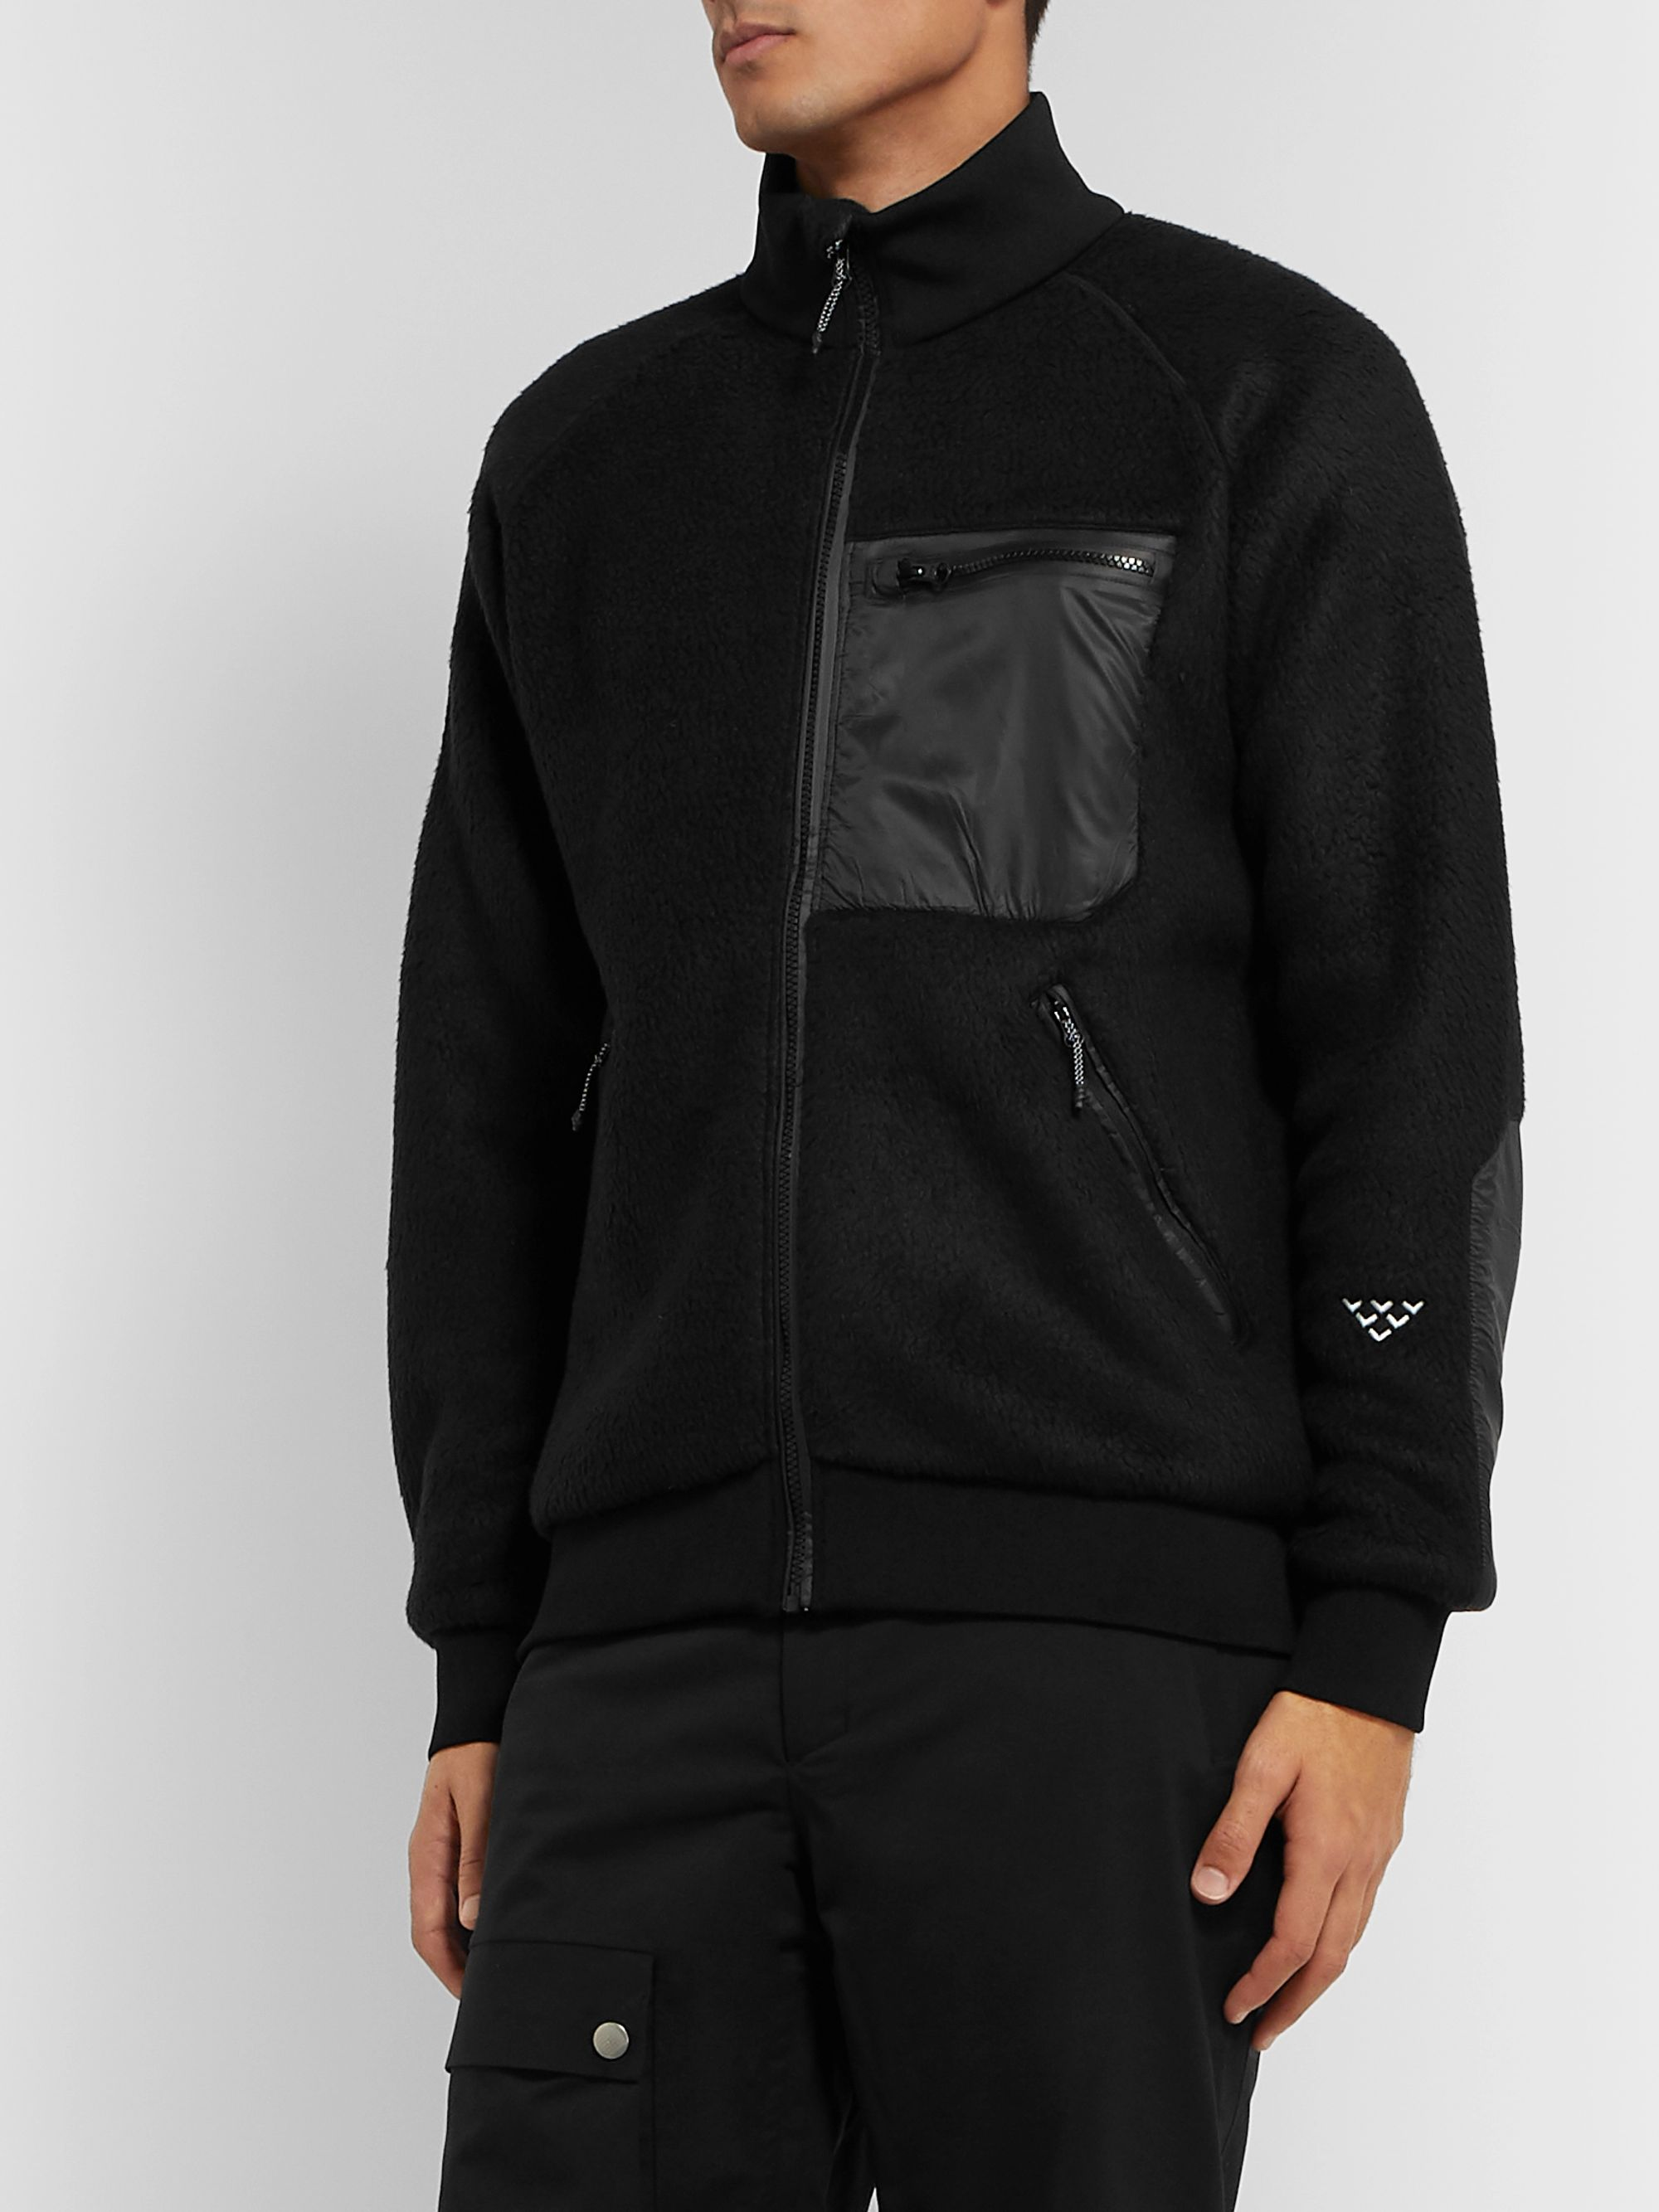 Black Crows Corpus Ripstop-Panelled Polartec Fleece Zip-Up Jacket